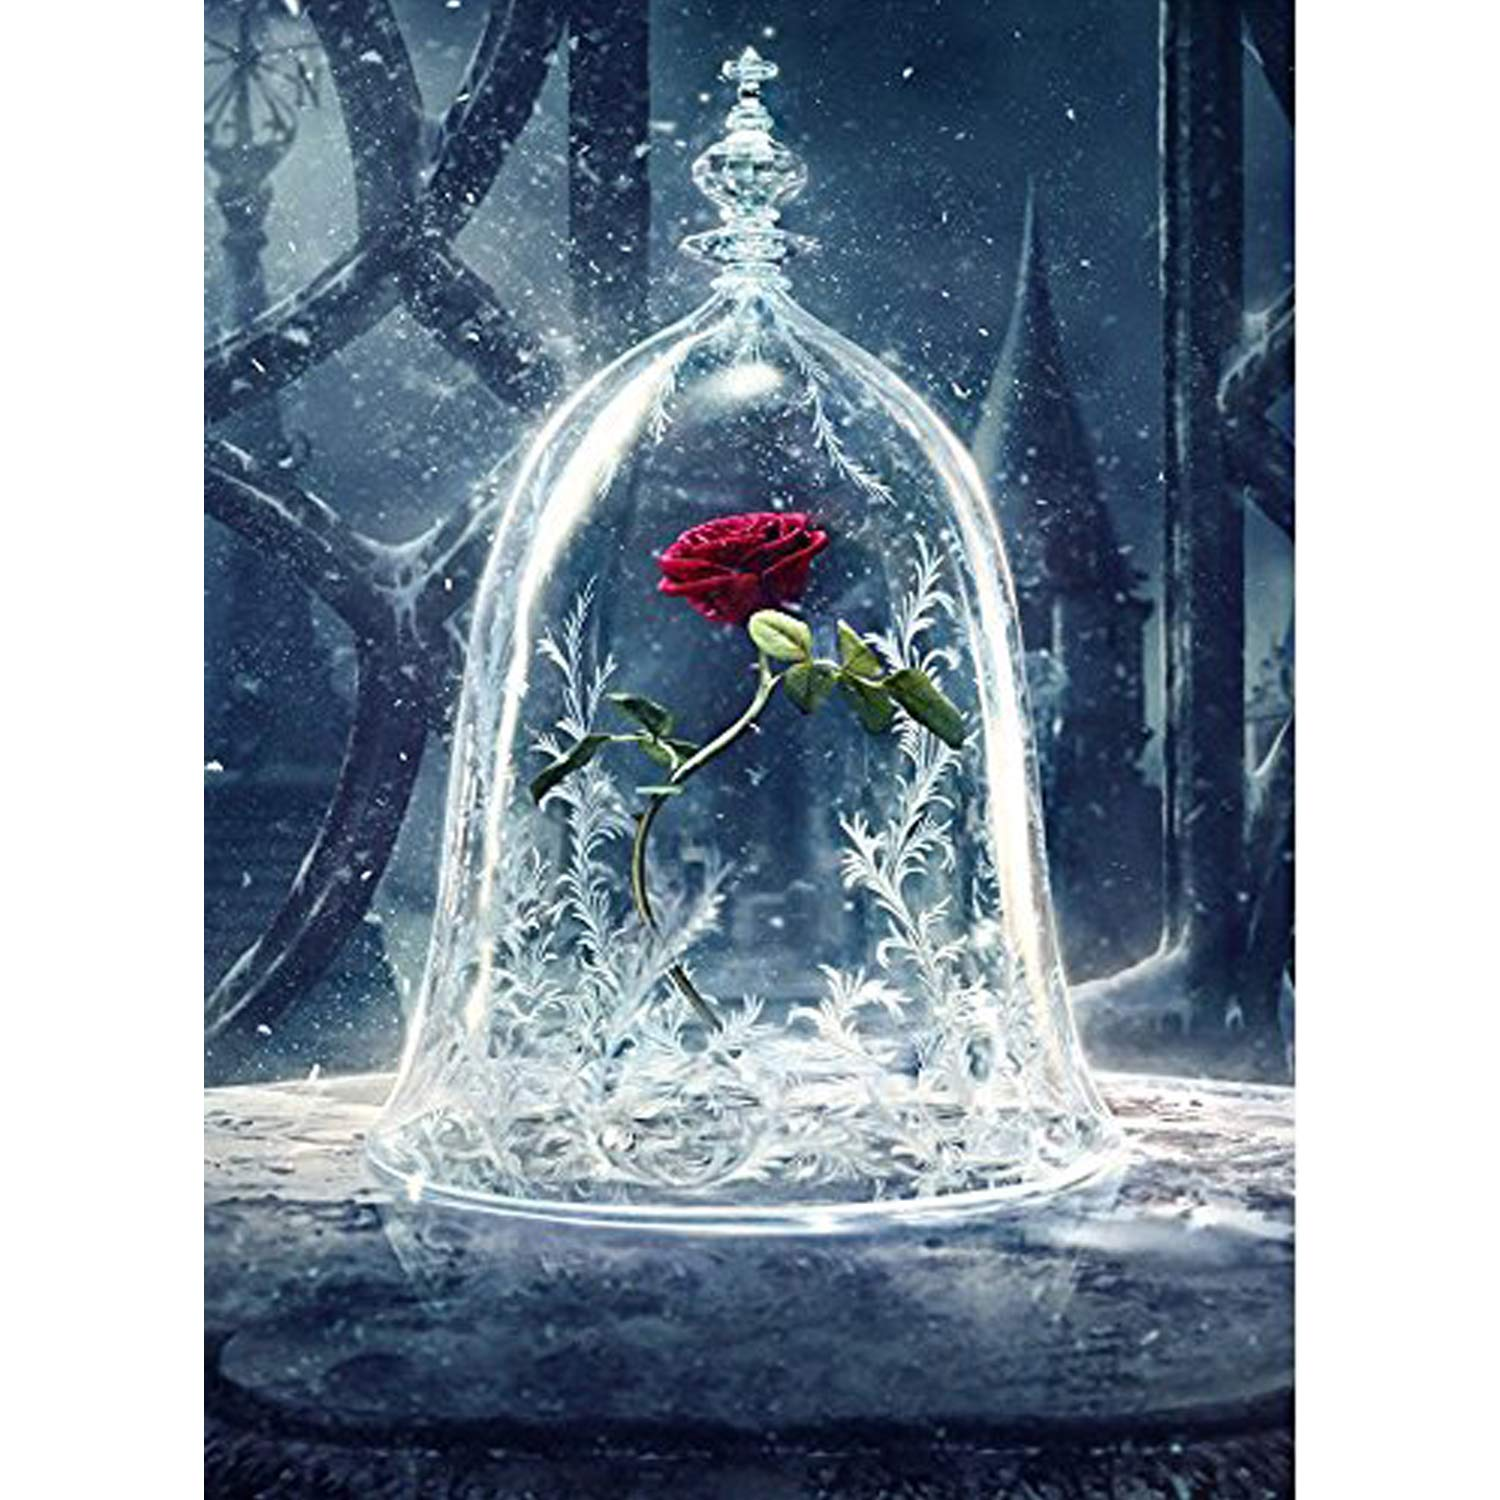 Sqailer 5D DIY Diamond Painting Full Square Drill Rose Rhinestone Embroidery for Wall Decoration 12X16 inches by Sqailer